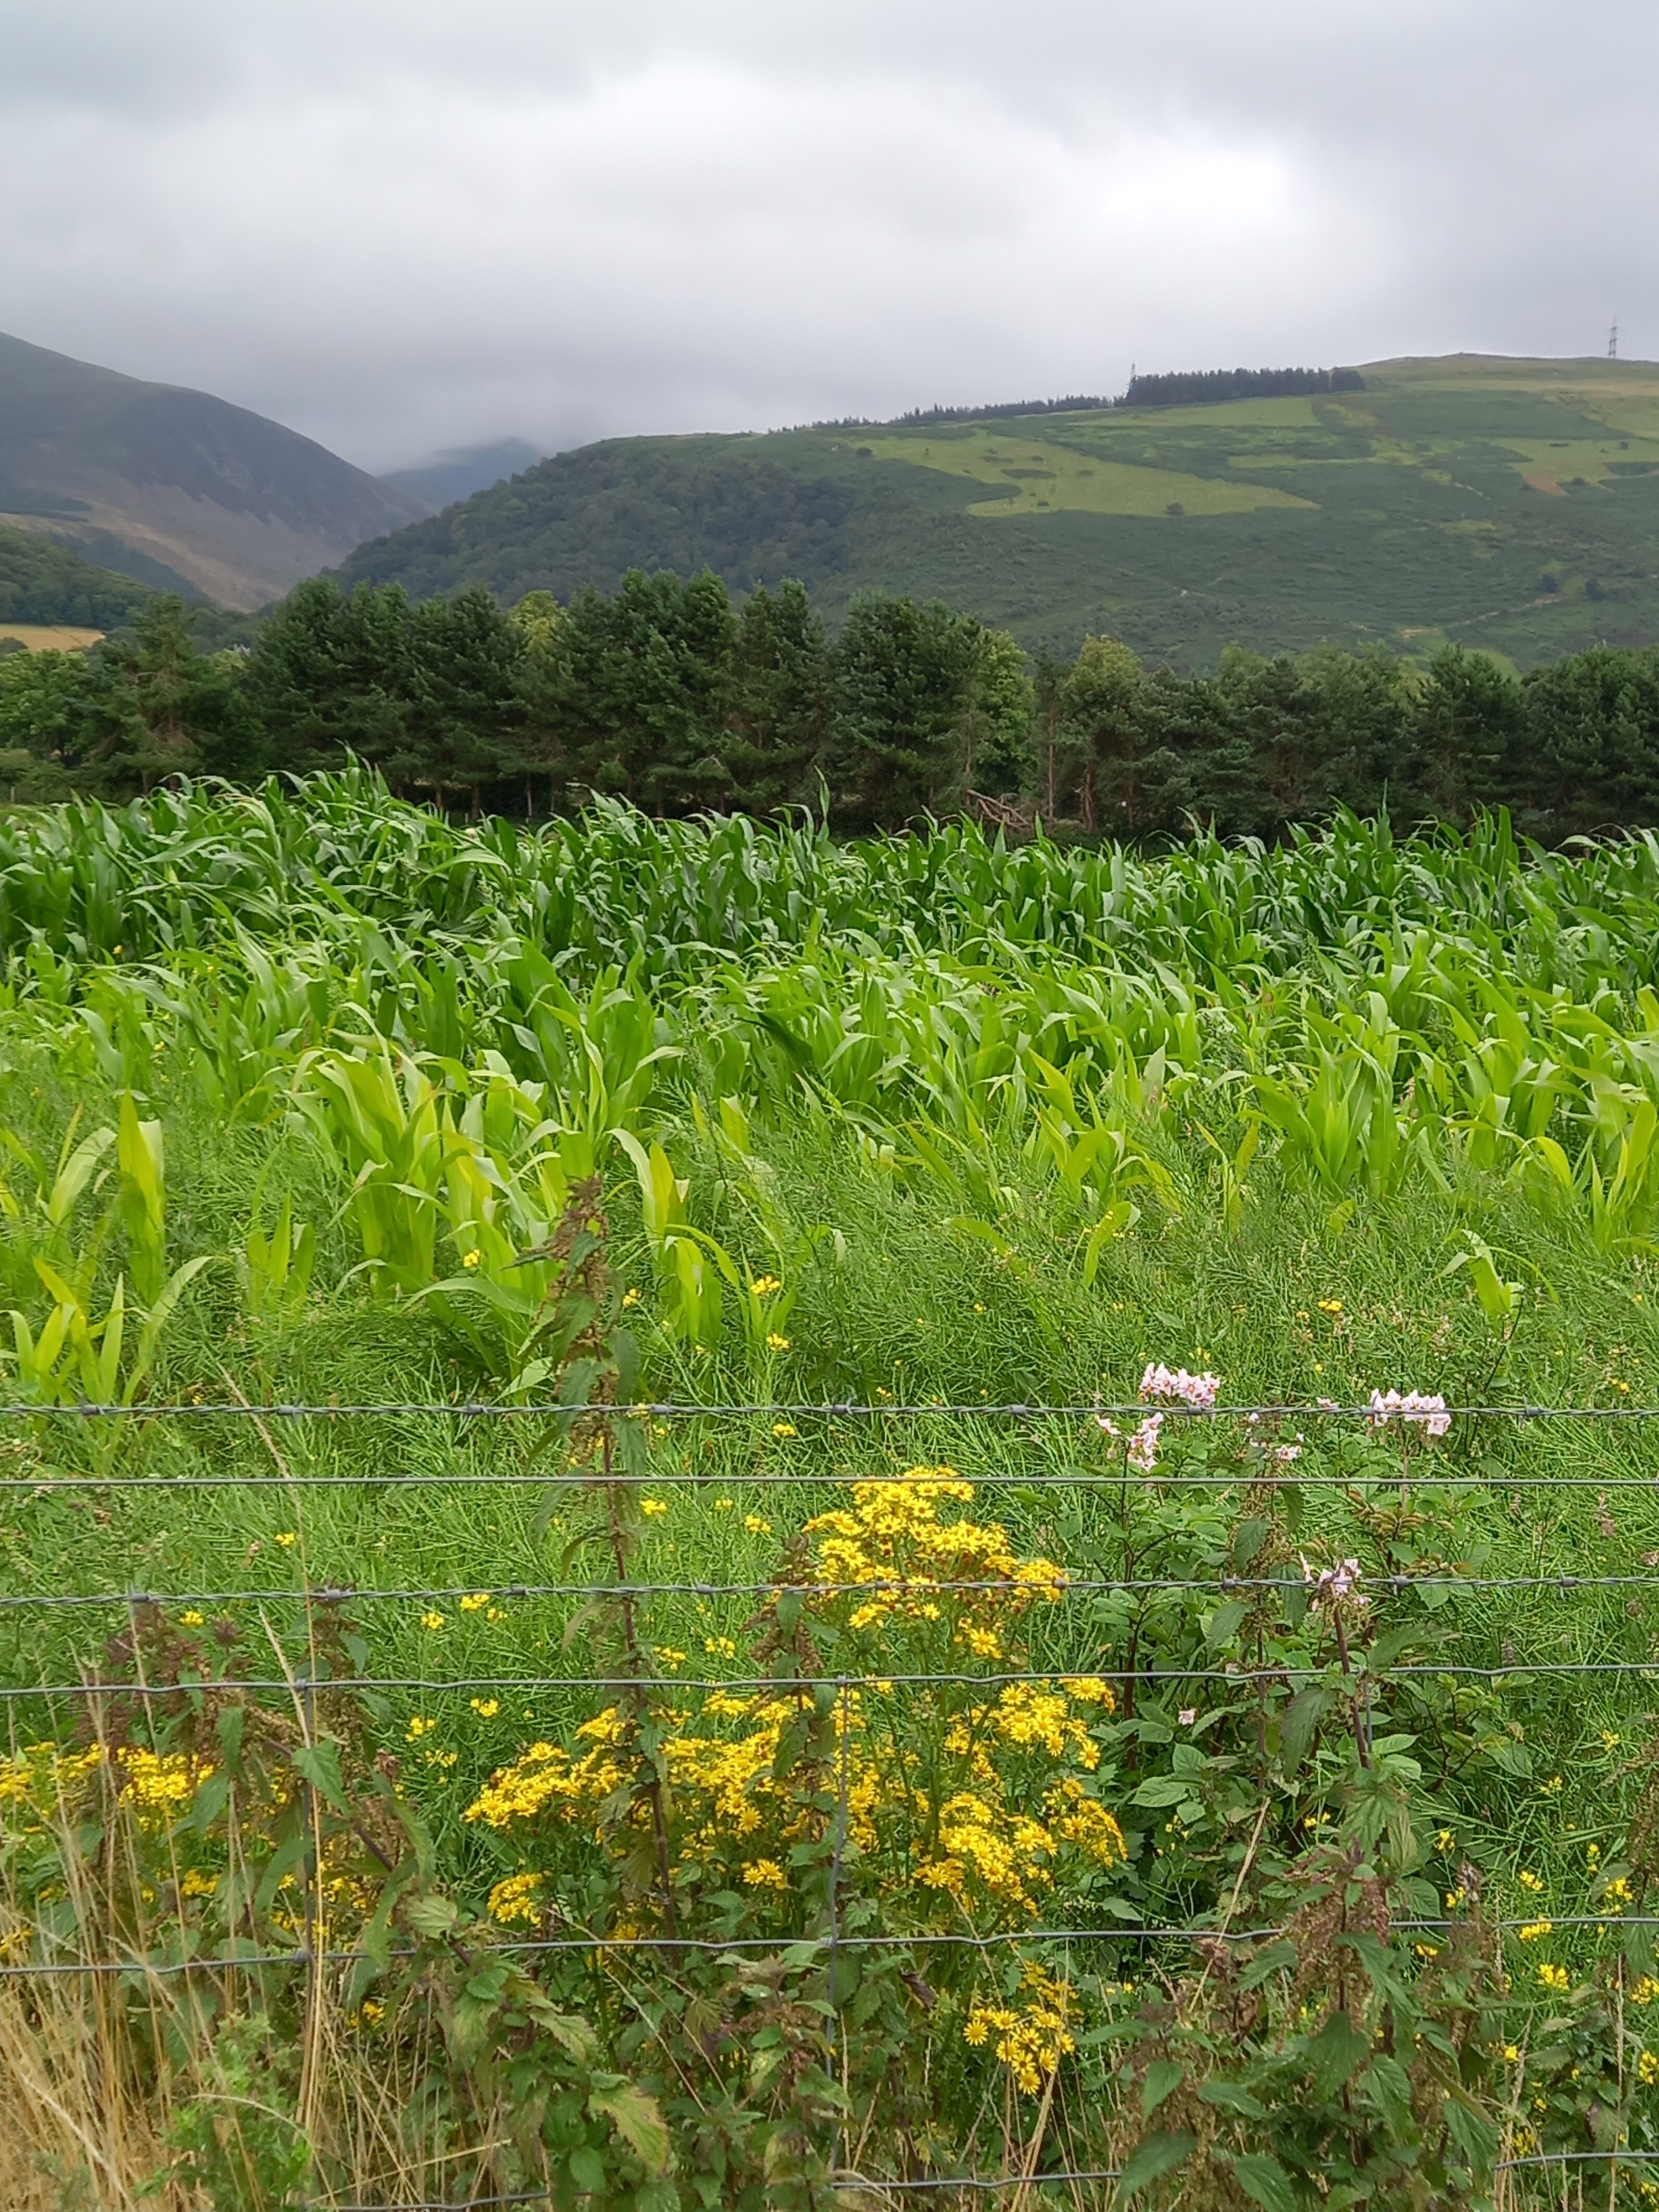 maize field in the foreground, a row of conifer trees then rolling hills and onward to Snowdonia national park. Sky is cloudy with patches of sunshine. Taken by Diane Woodrow